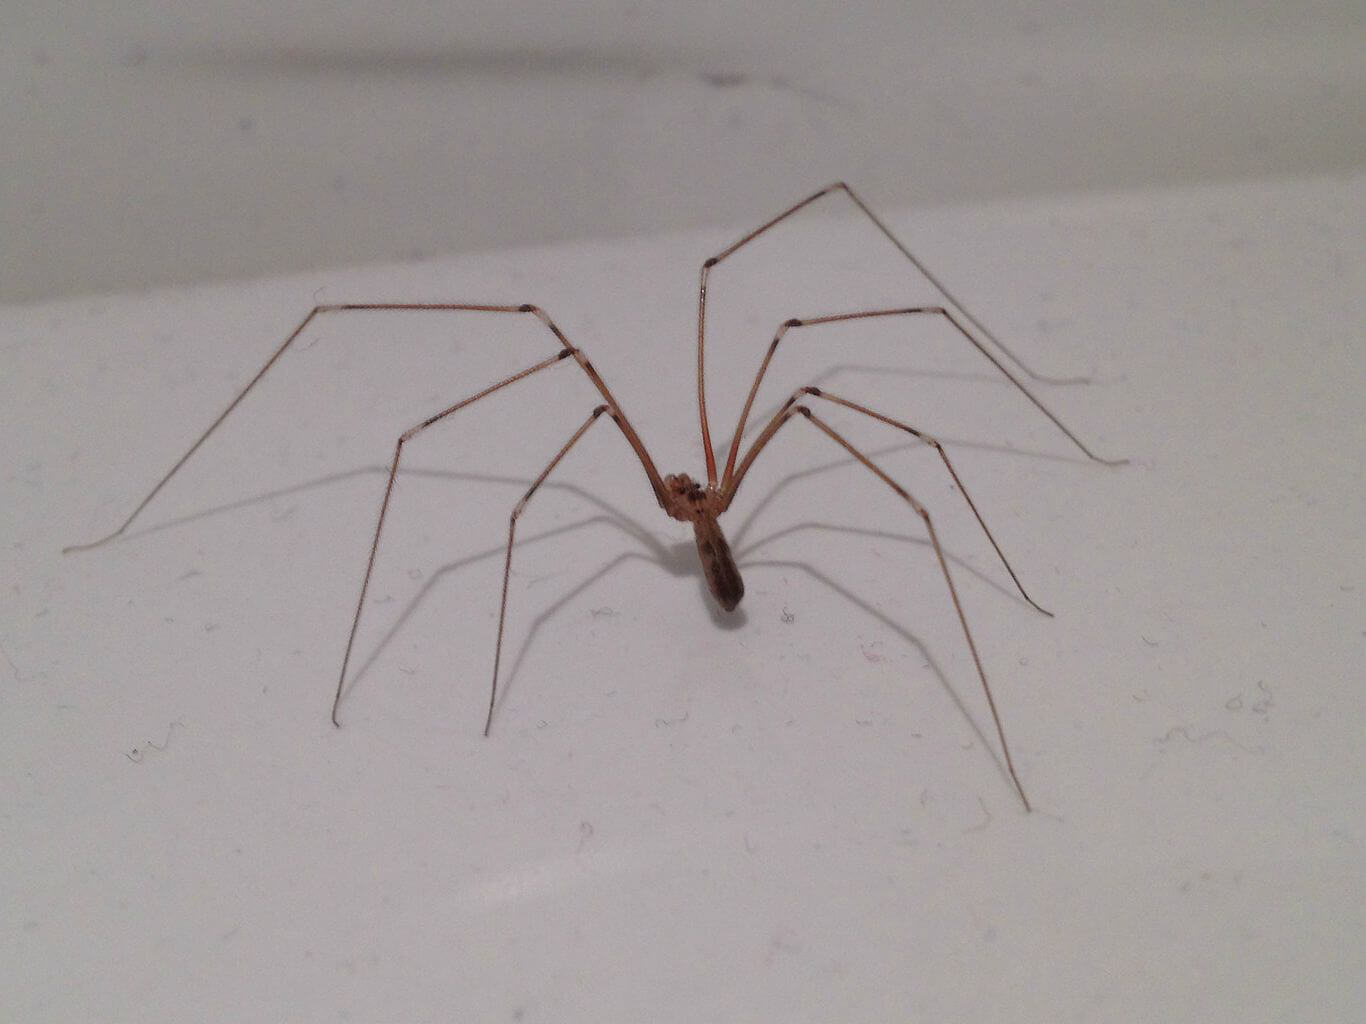 Escort Mr Or Ms Bug Out Of Your House Humanely Peta